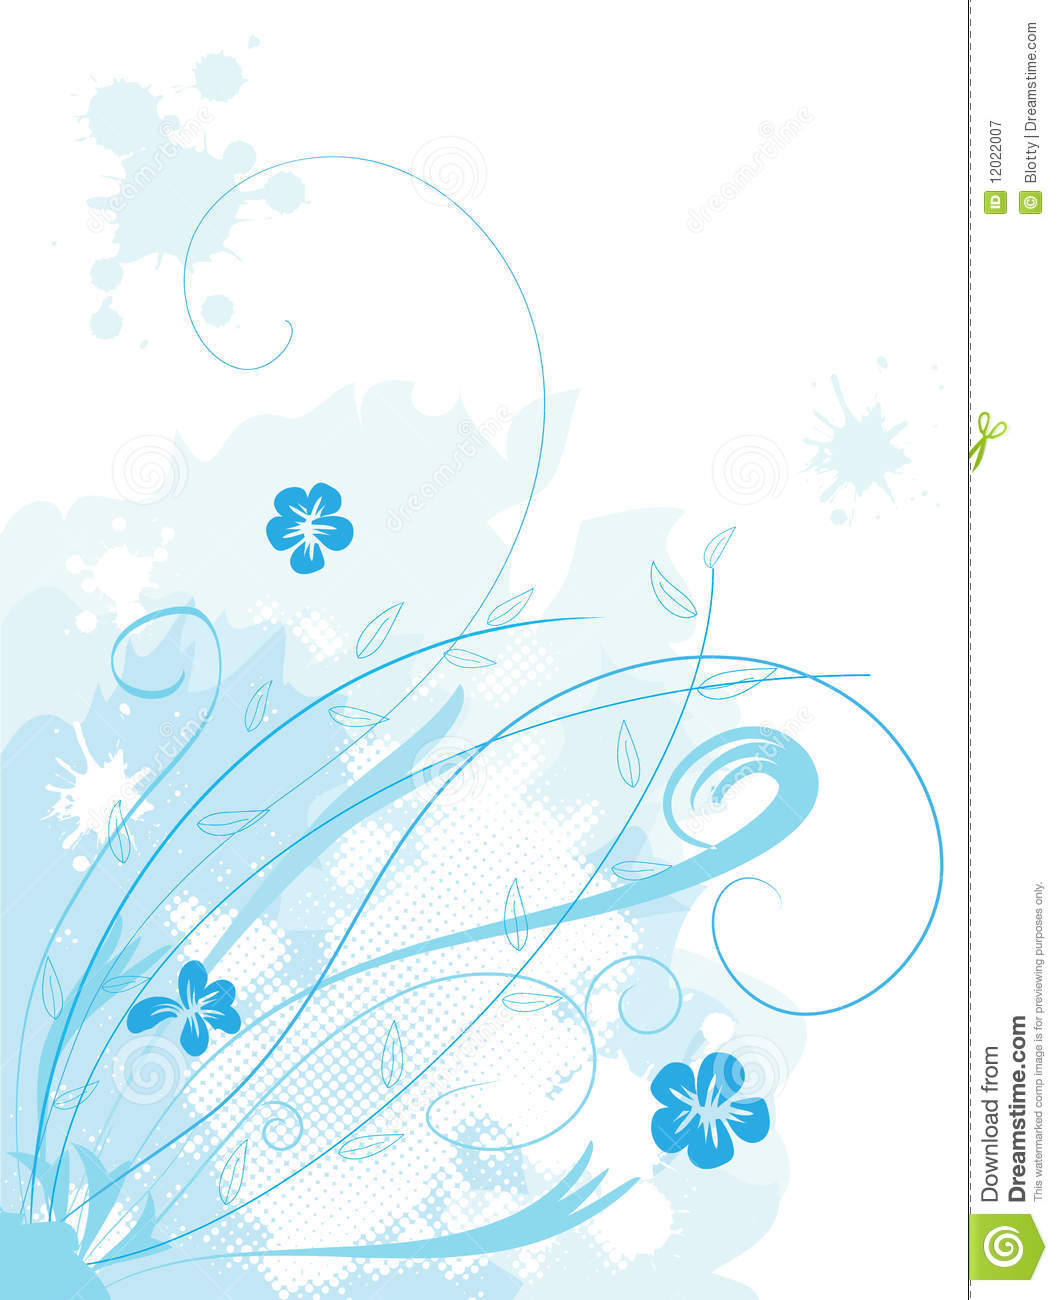 beautiful floral background stock vector - illustration of dirty